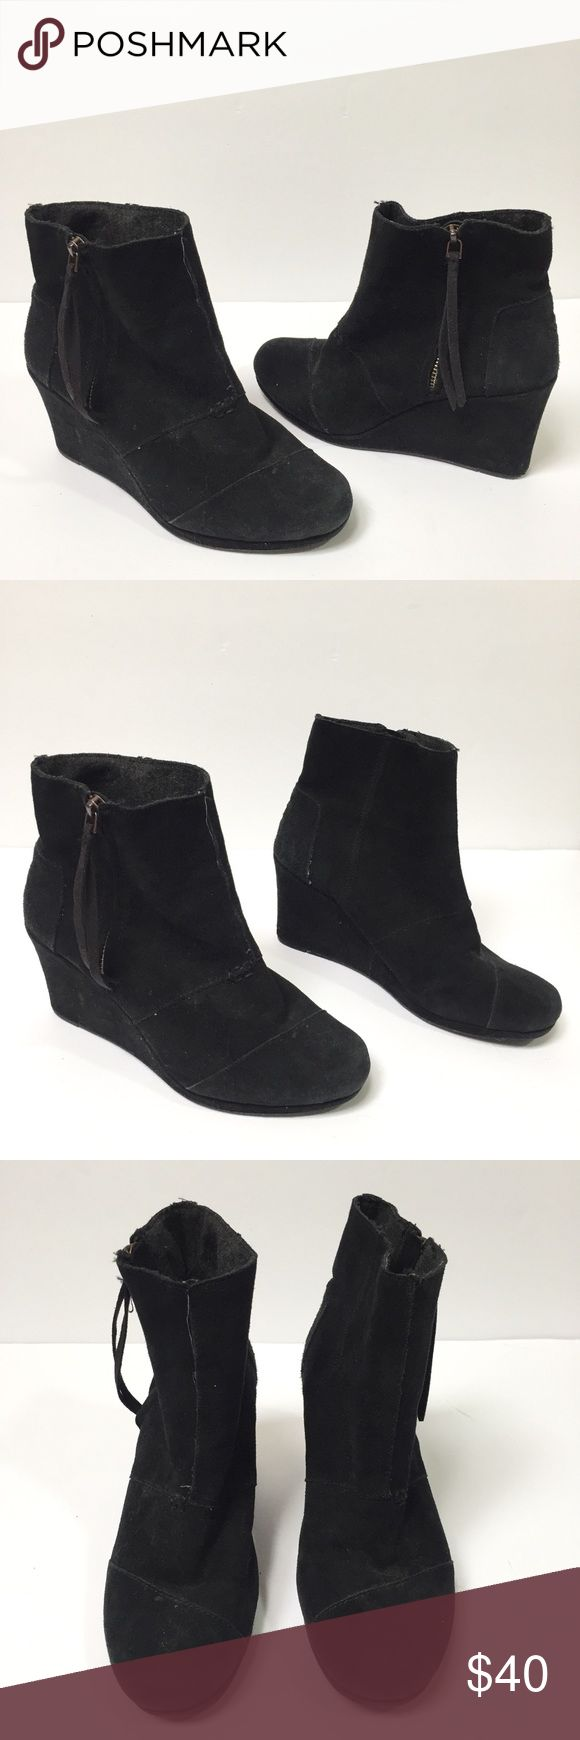 Tom's black desert wedges booties - Size: 7.5 - Material: faux suede - Condition: great - Color: black - Closure: zipper on side  - Style: Tom's black desert wedge booties - Extra notes: Toms Shoes Ankle Boots & Booties